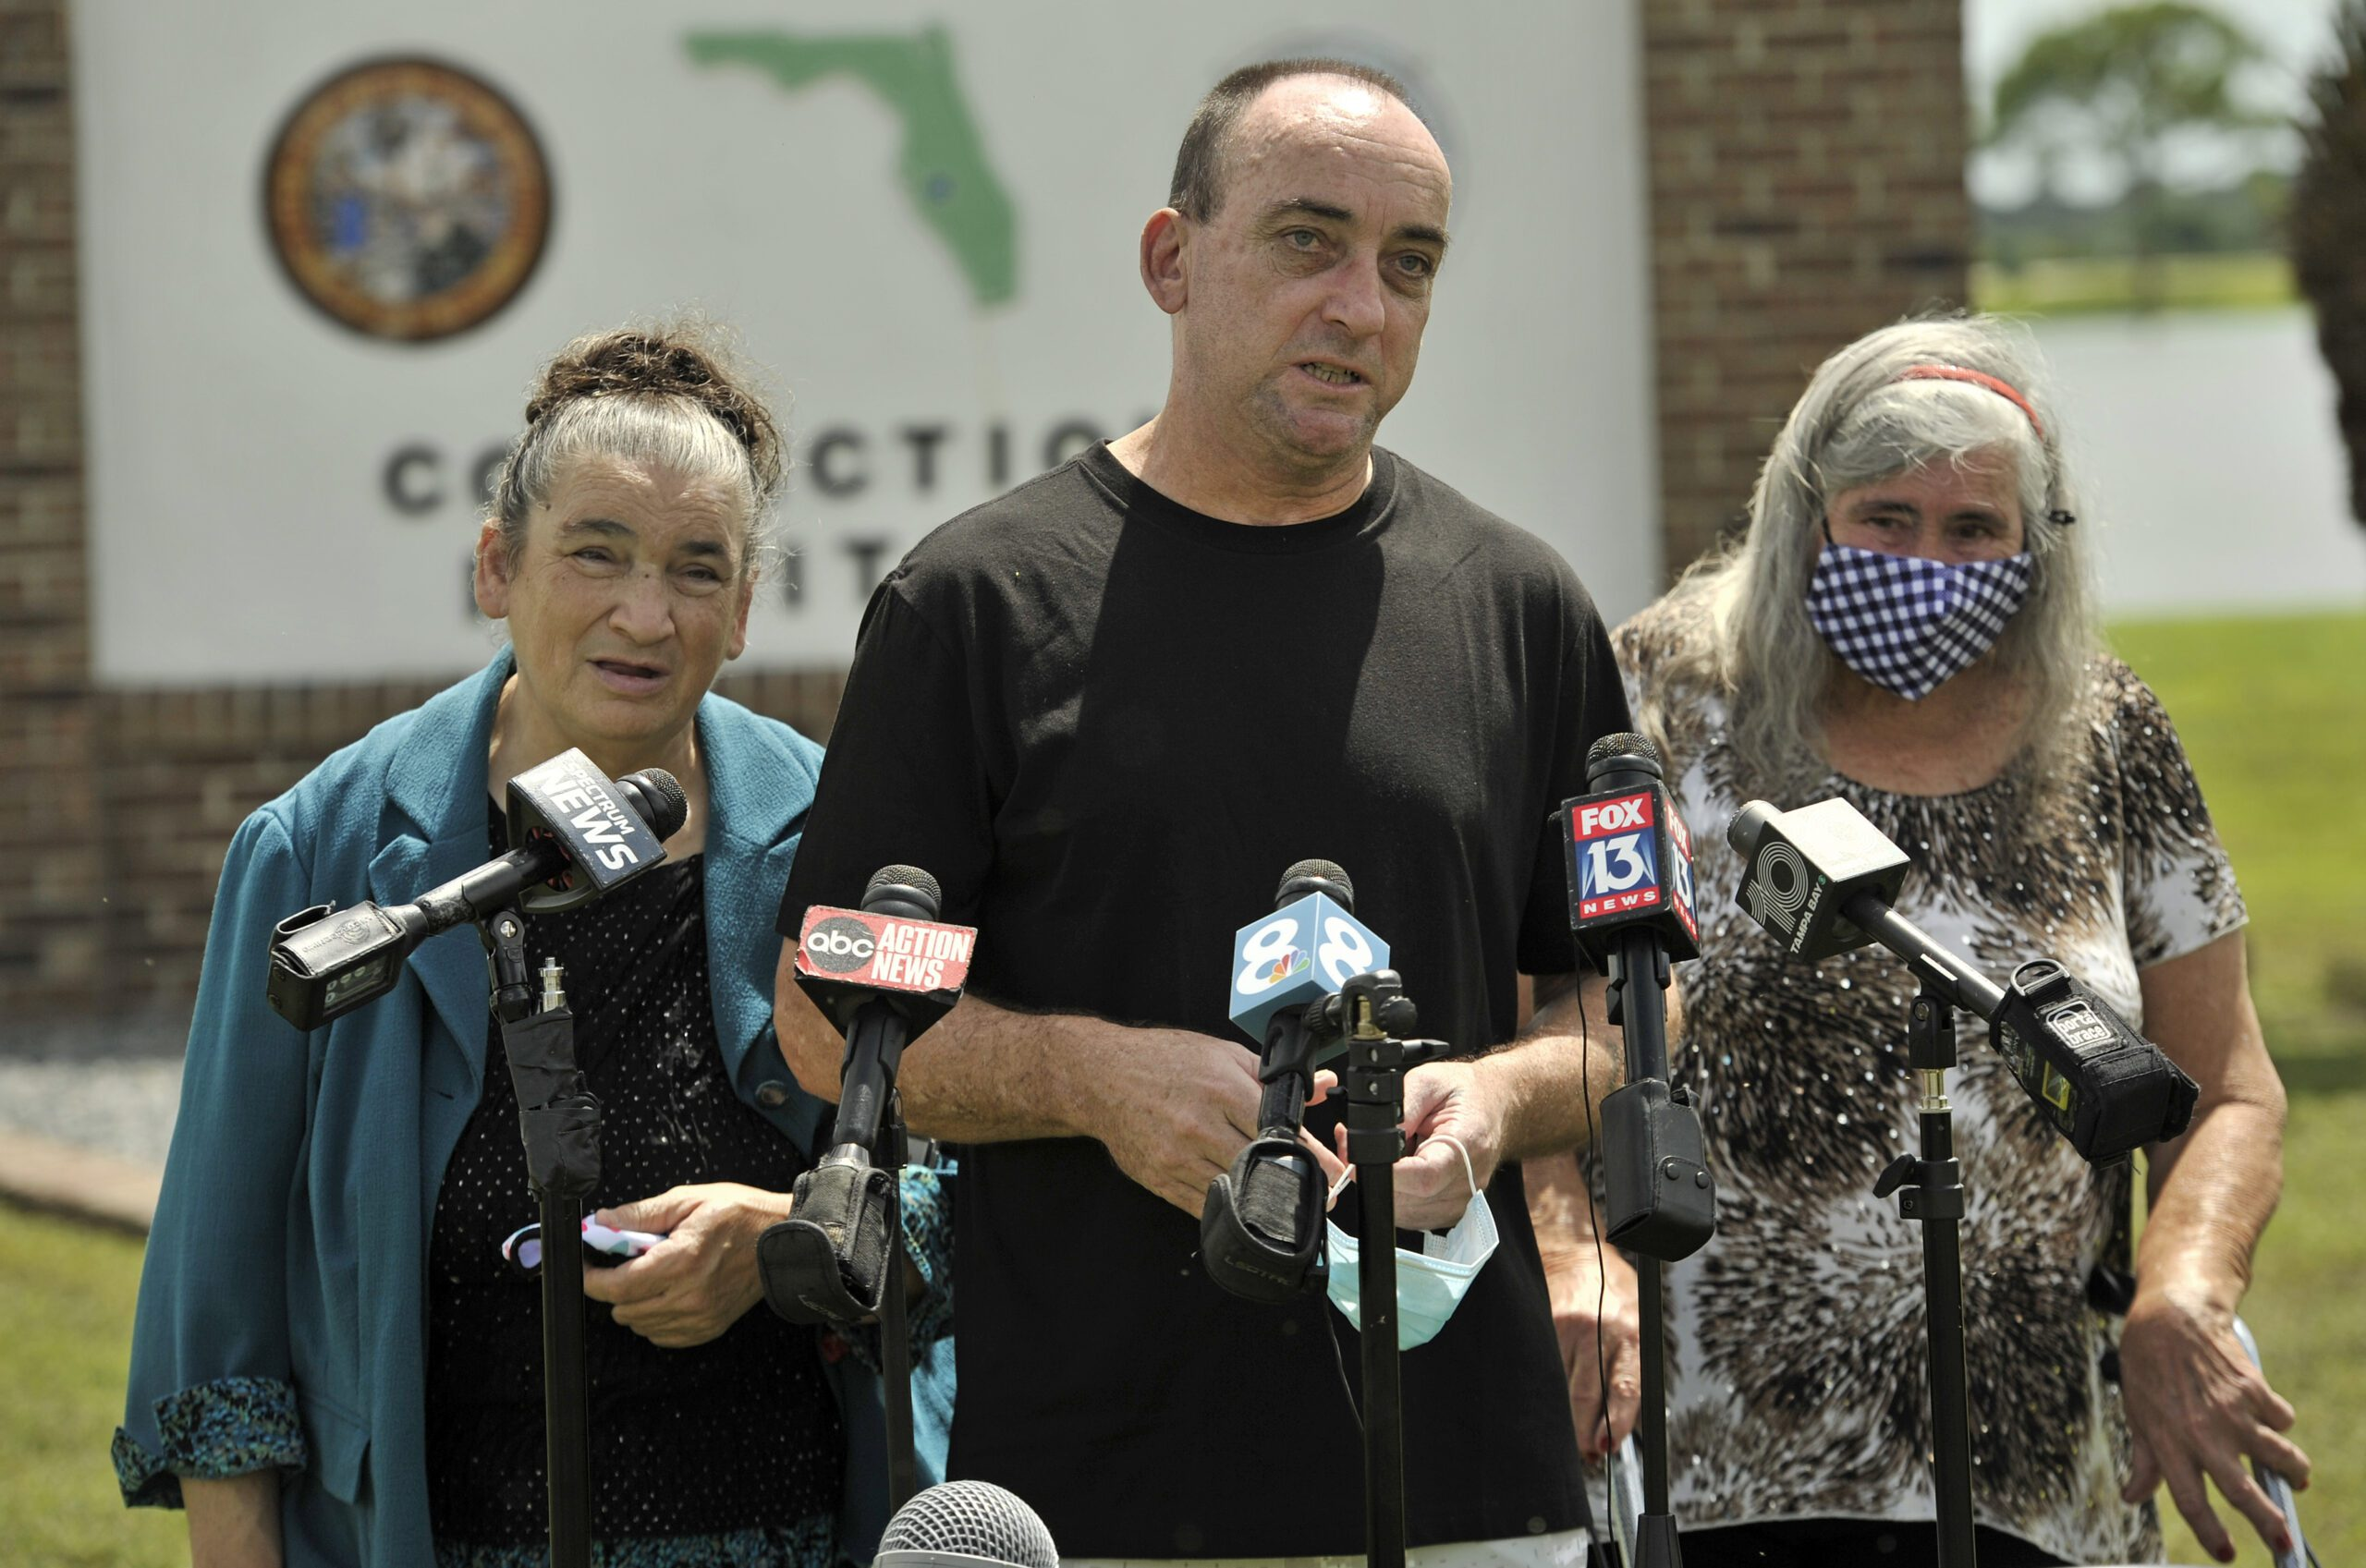 florida-man-exonerated-after-37-years-in-prison-sues-tampa,-retired-police-over-wrongful-conviction